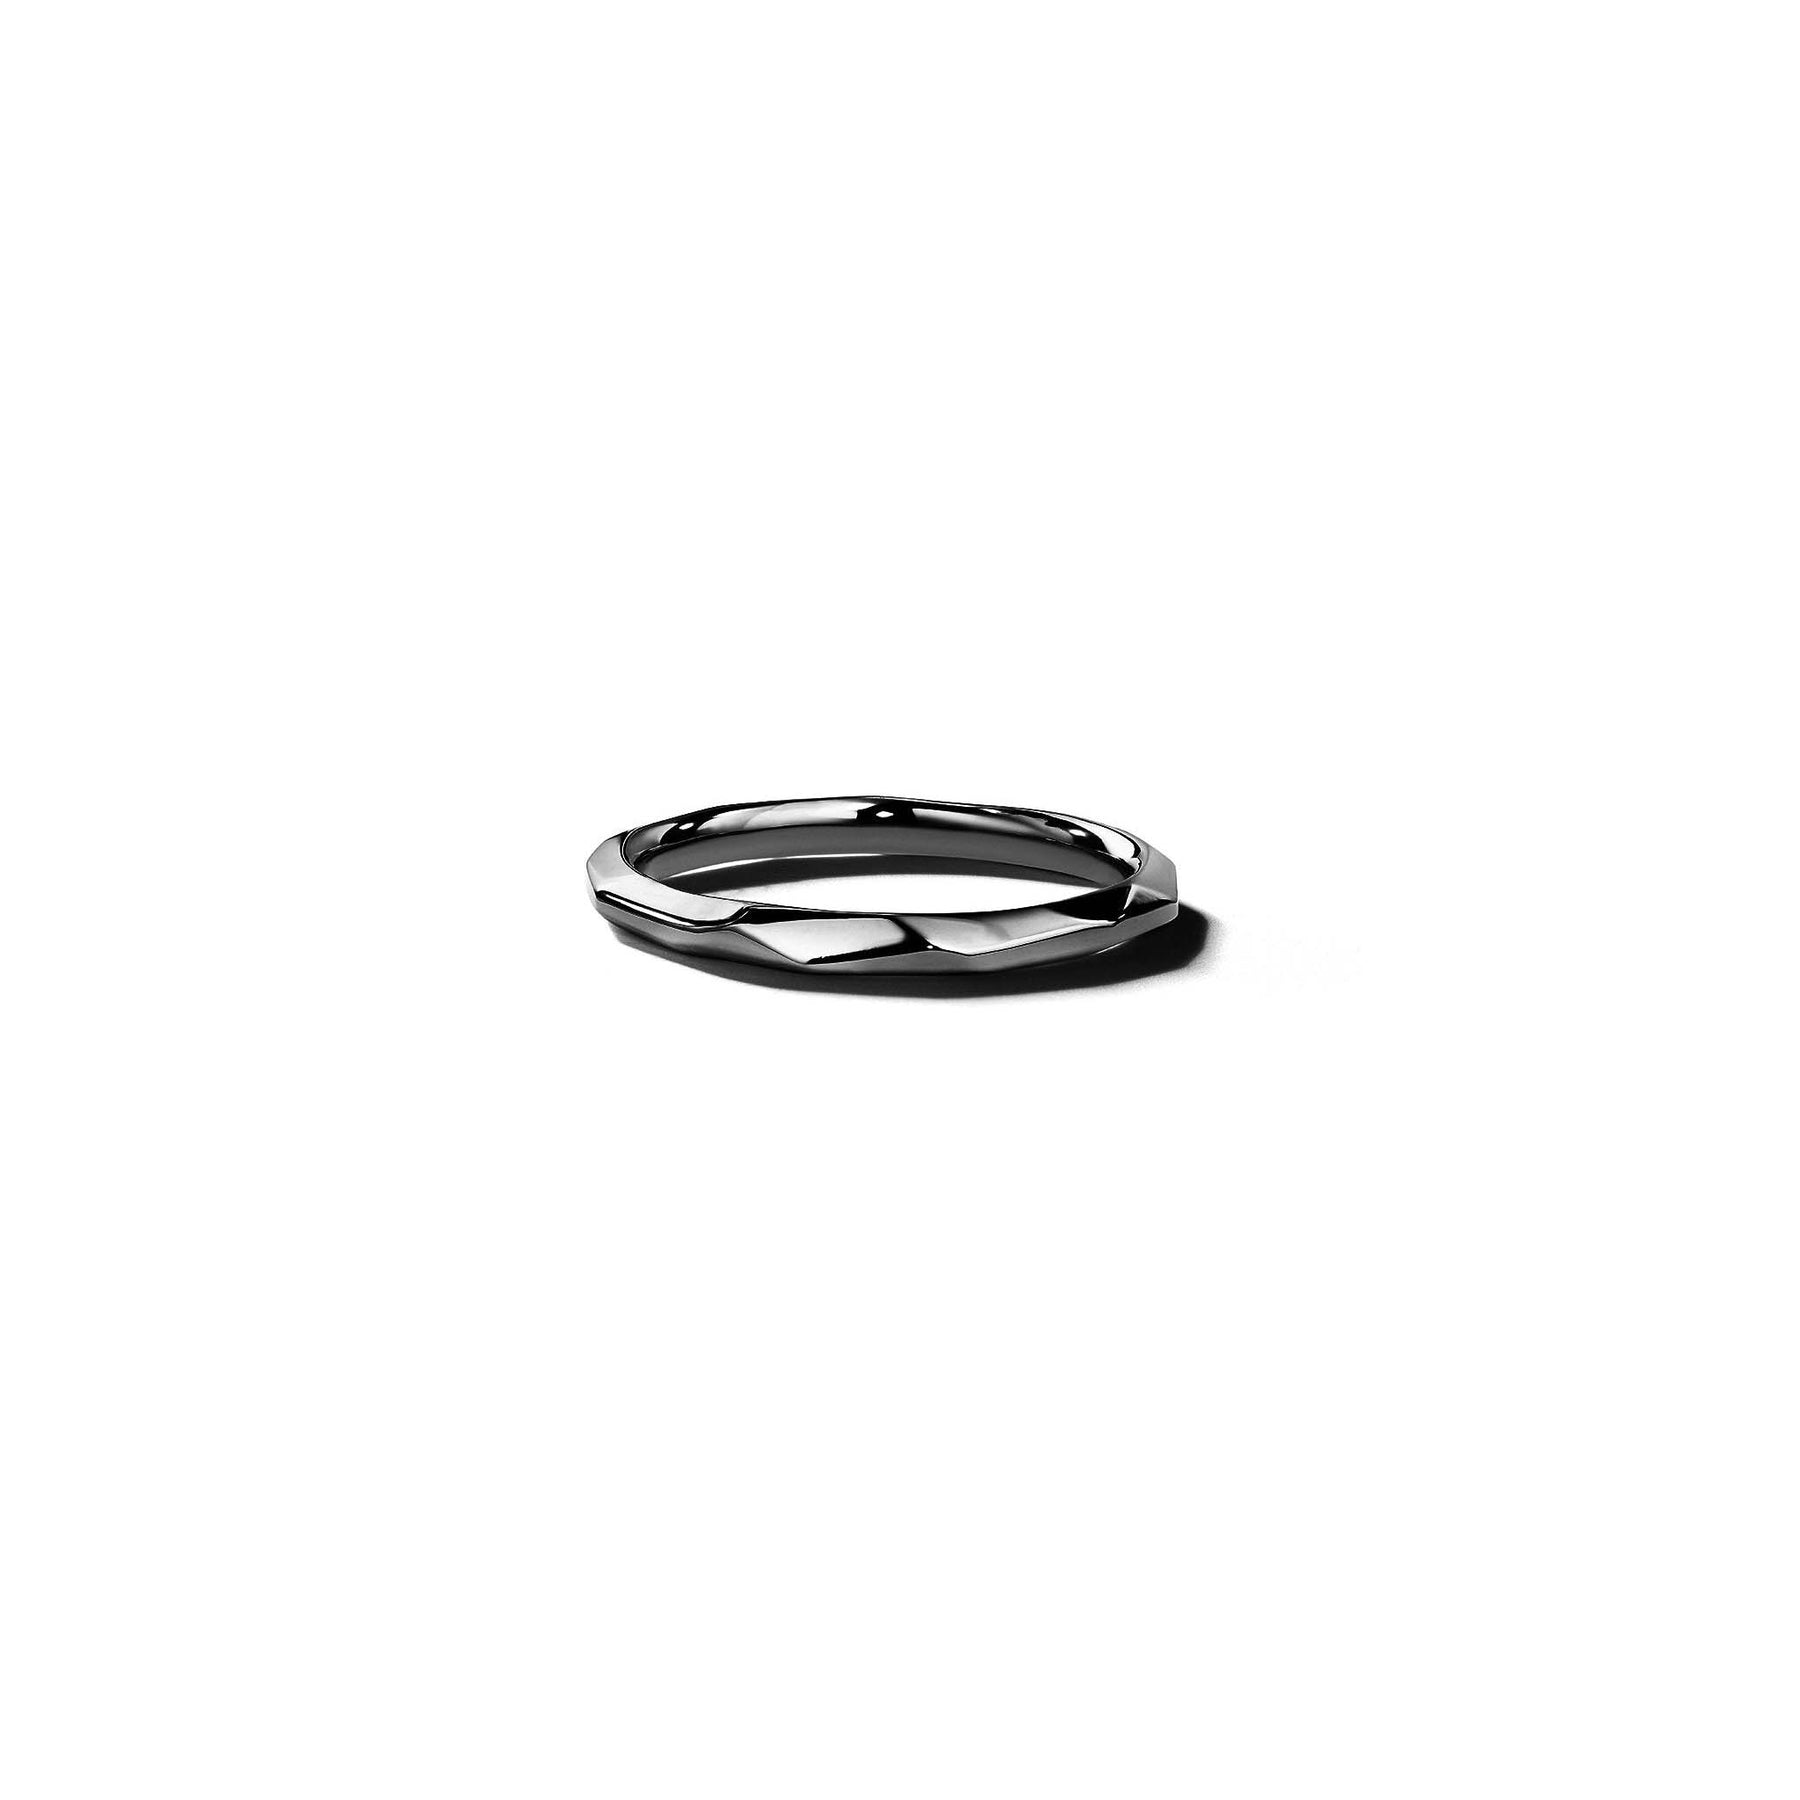 Jackson-Switch-Faceted-Stackable-Ring-2MM_18k Black Gold